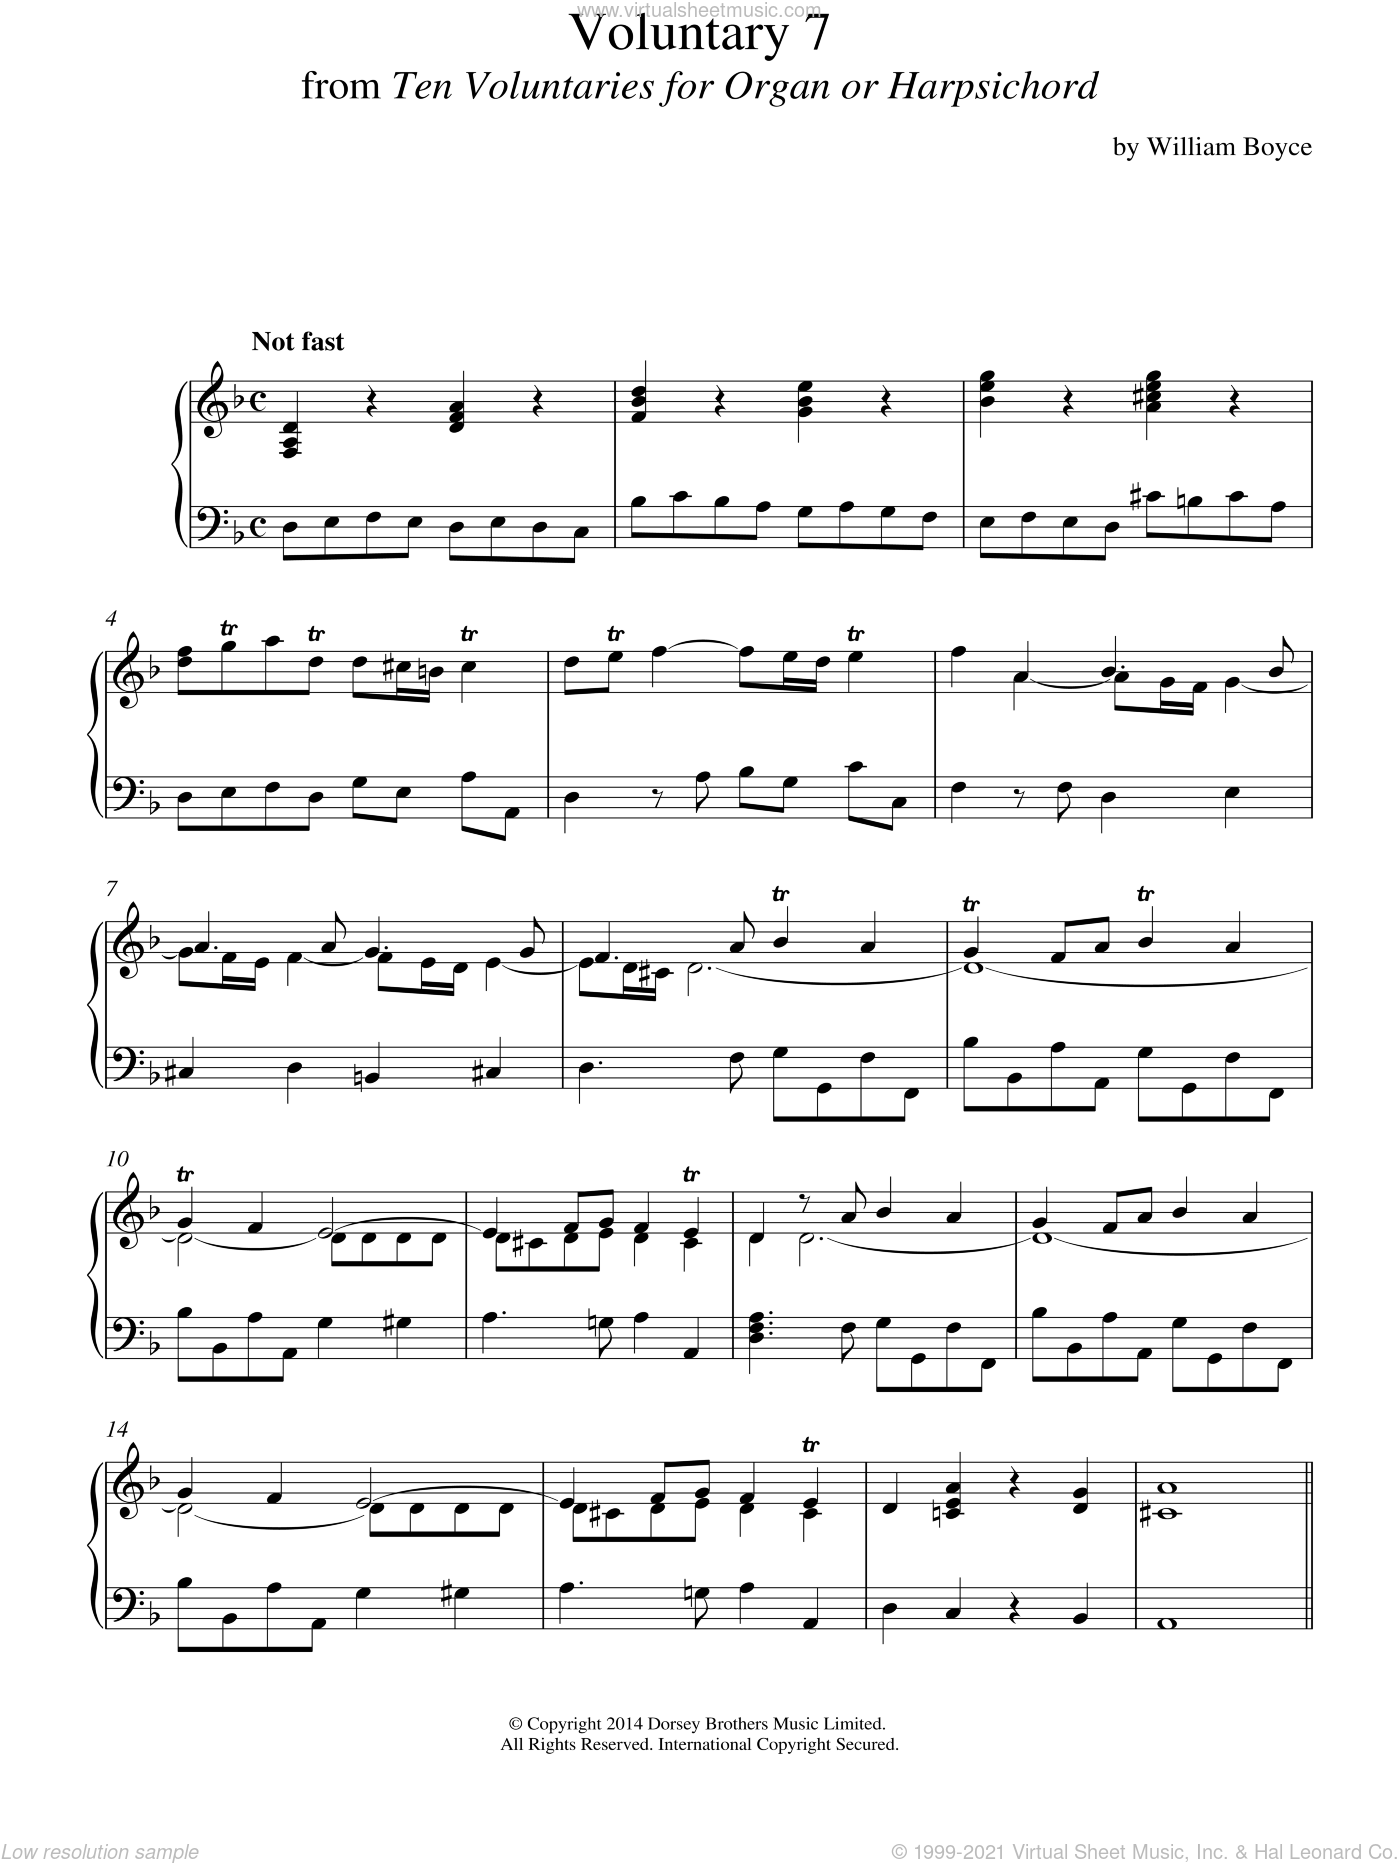 Voluntary 7 In D Minor From 10 Voluntaries For Harpsichord sheet music for piano solo by William Boyce, classical score, intermediate piano. Score Image Preview.